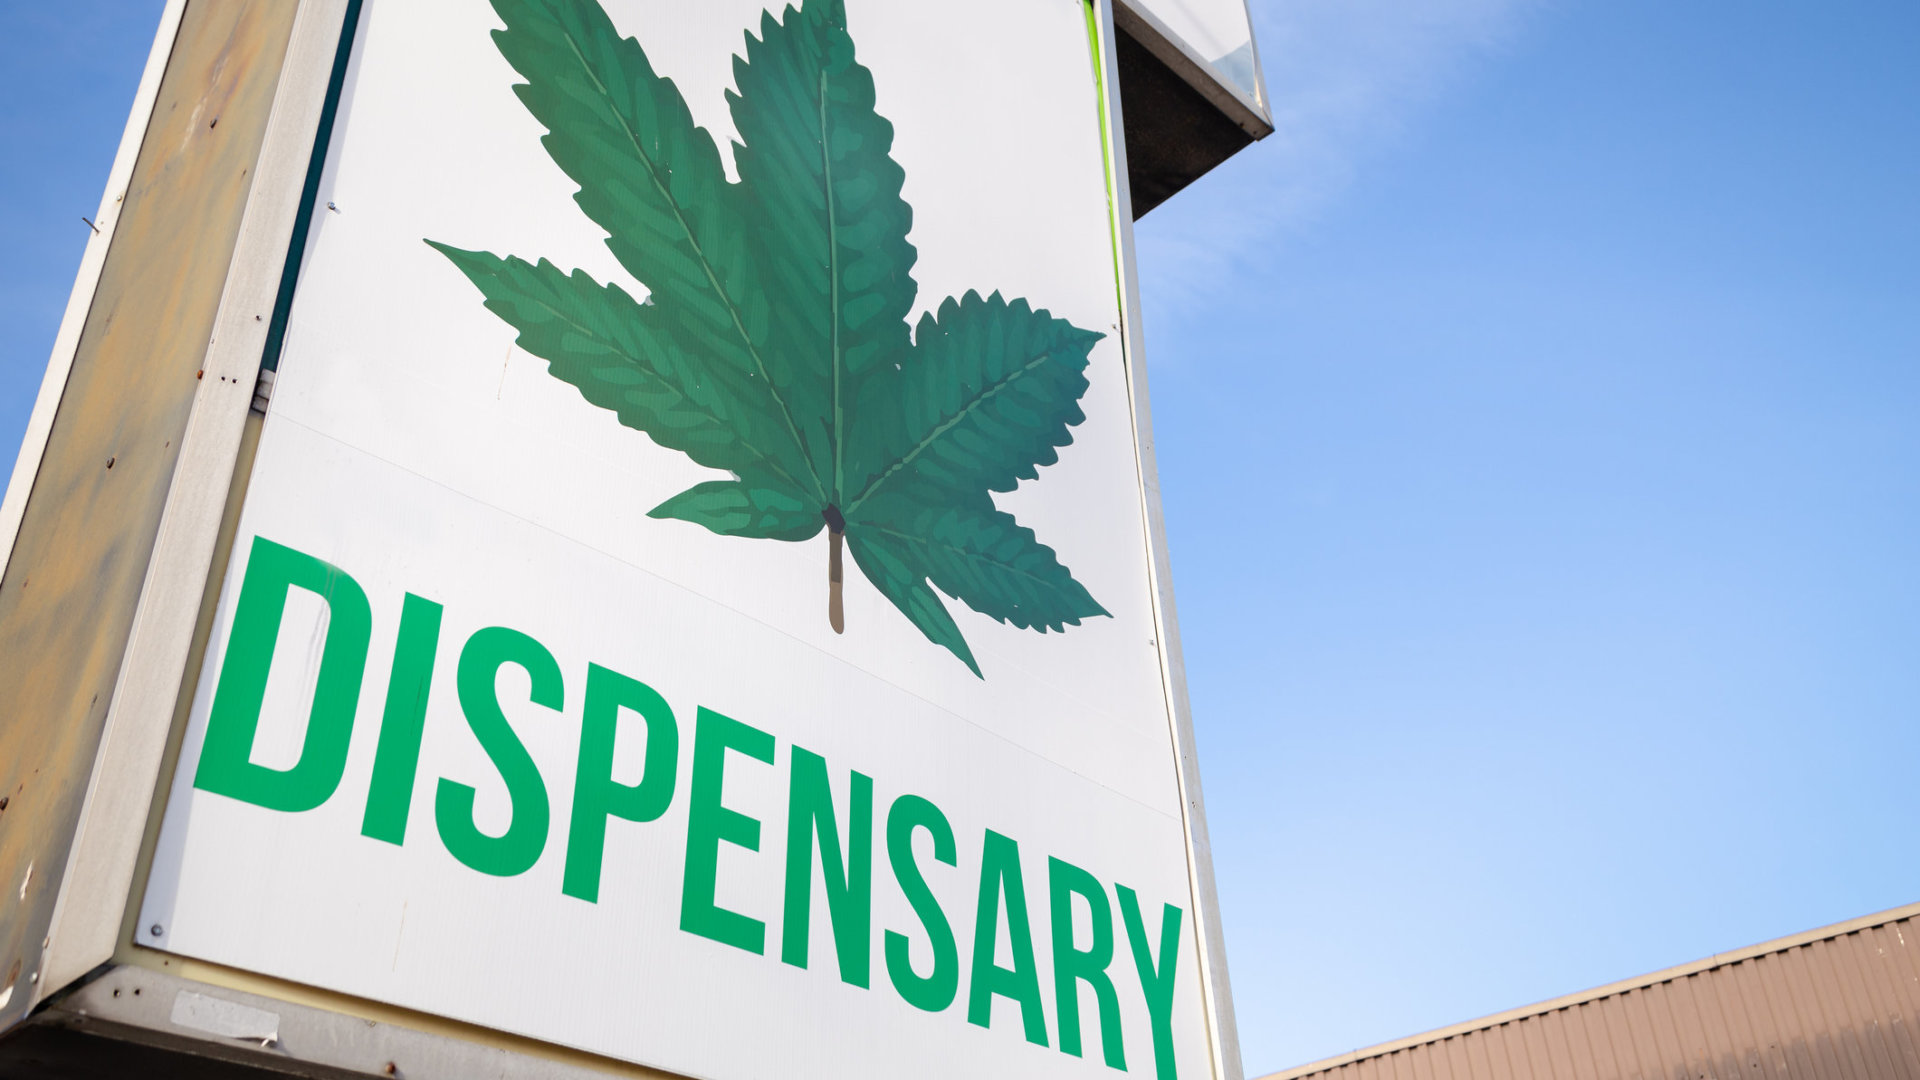 A cannabis dispensary sign with a large marijuana leaf on it